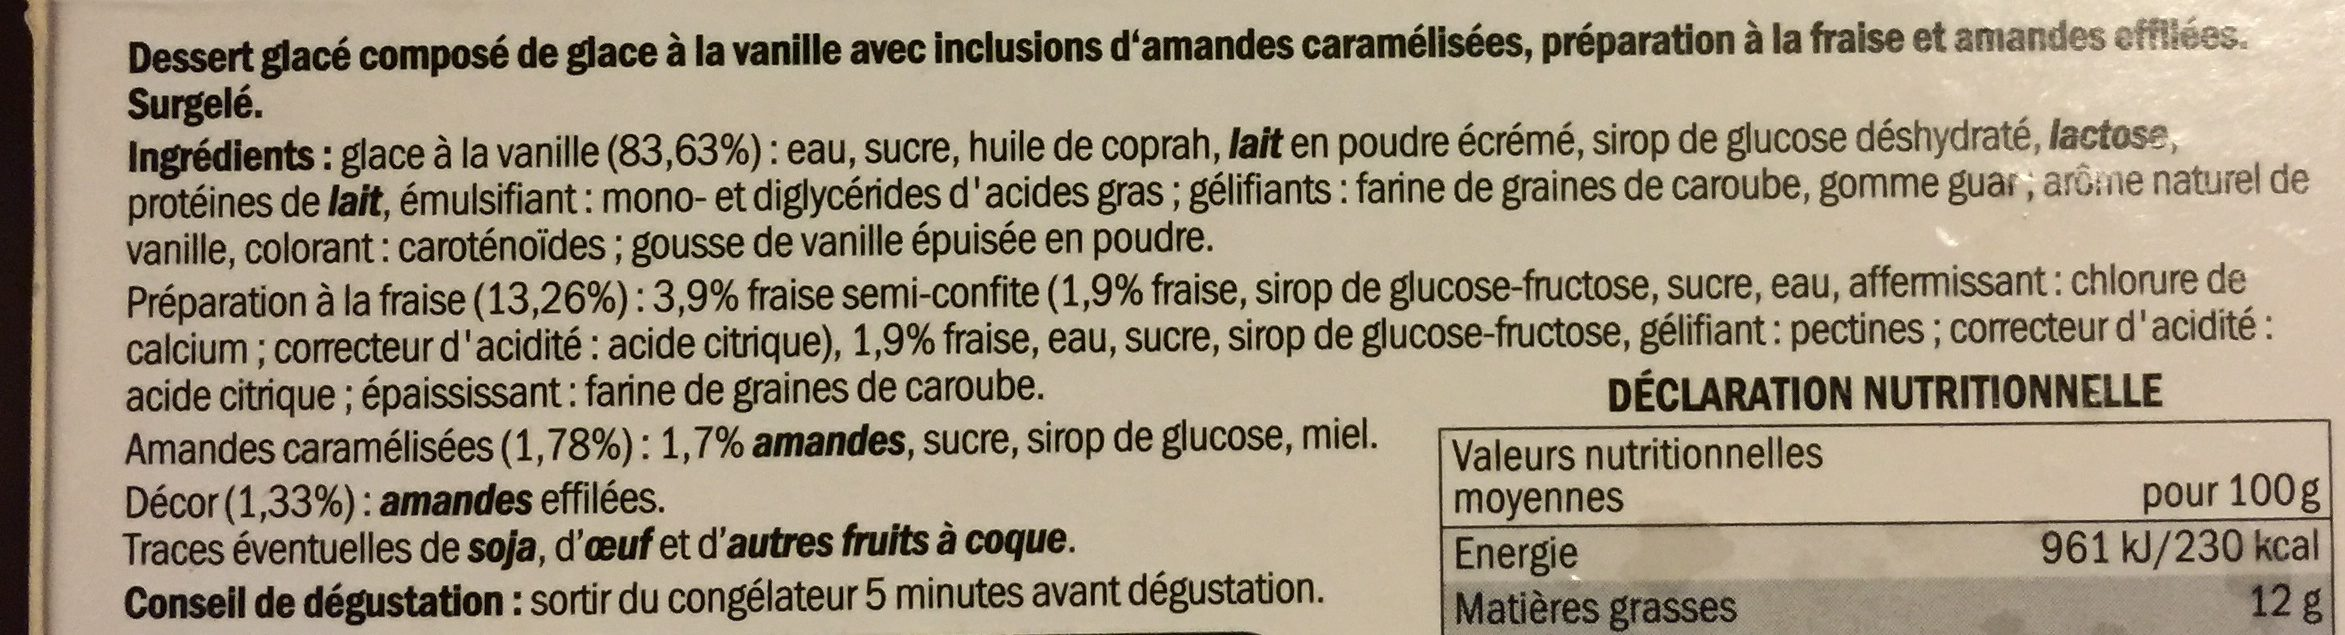 2 verrines glacees facon fraise melba - Ingredients